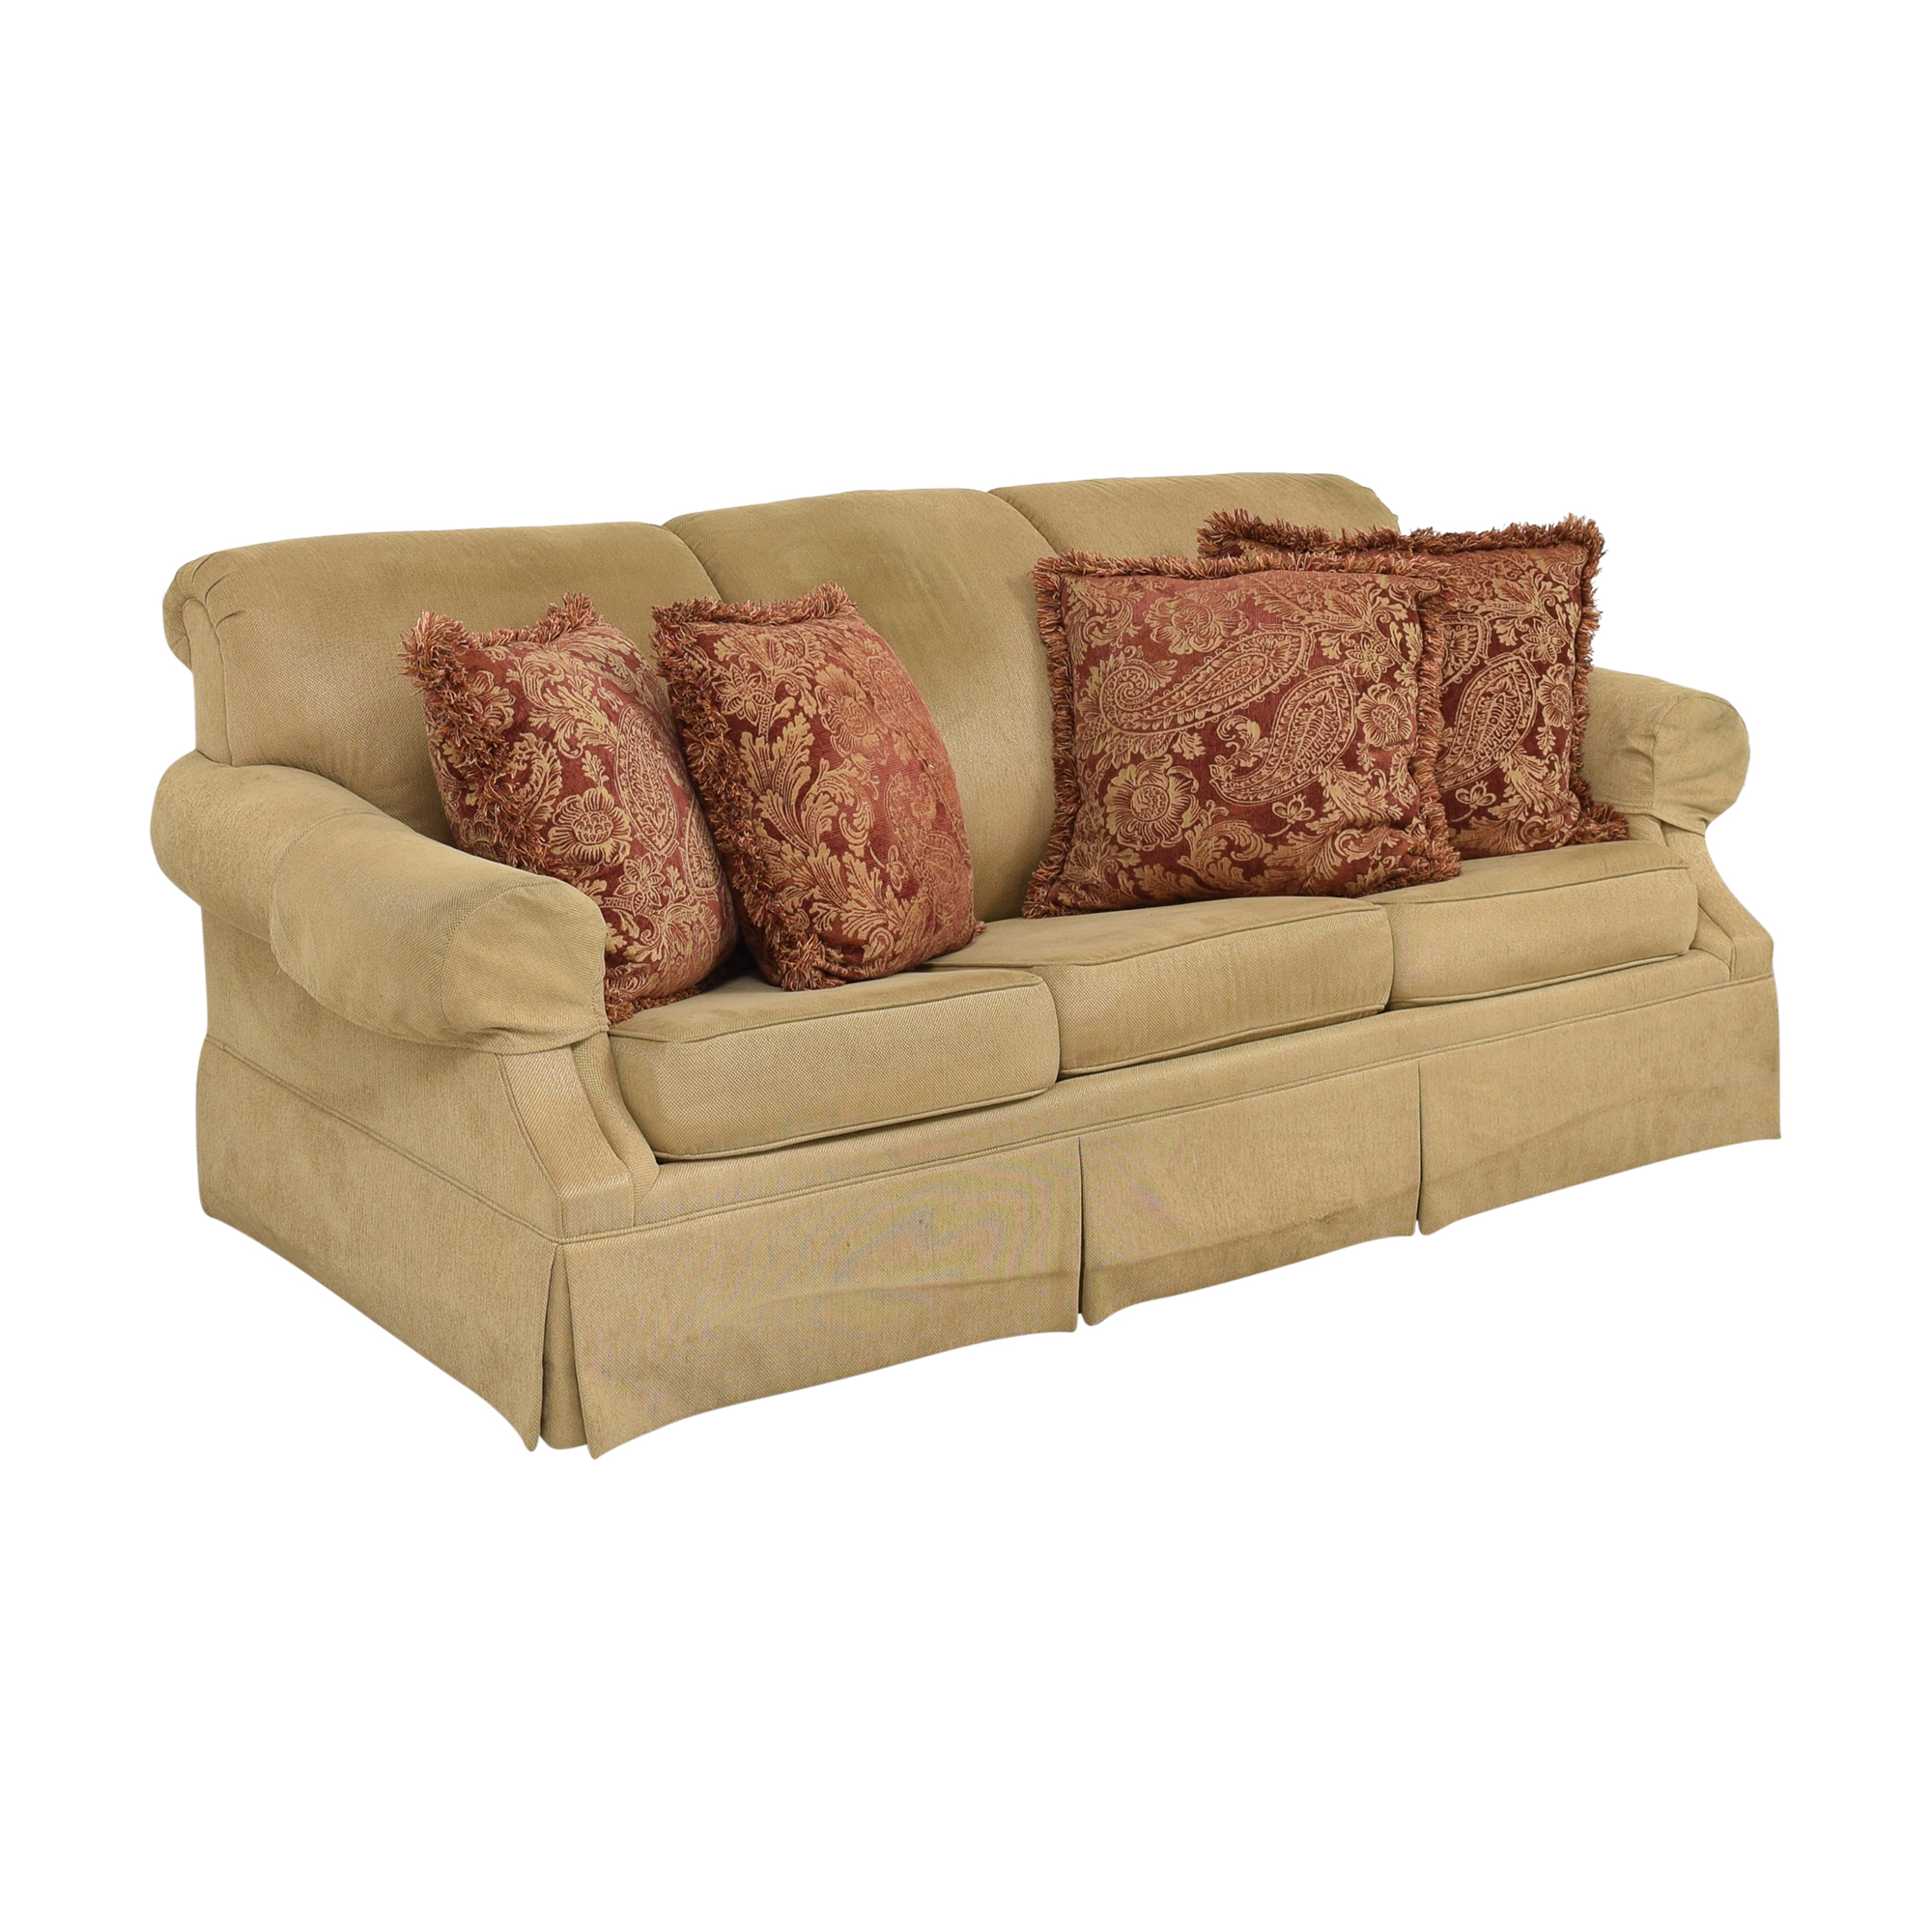 Drexel Heritage Drexel Heritage Roll Arm Queen Sleeper Sofa